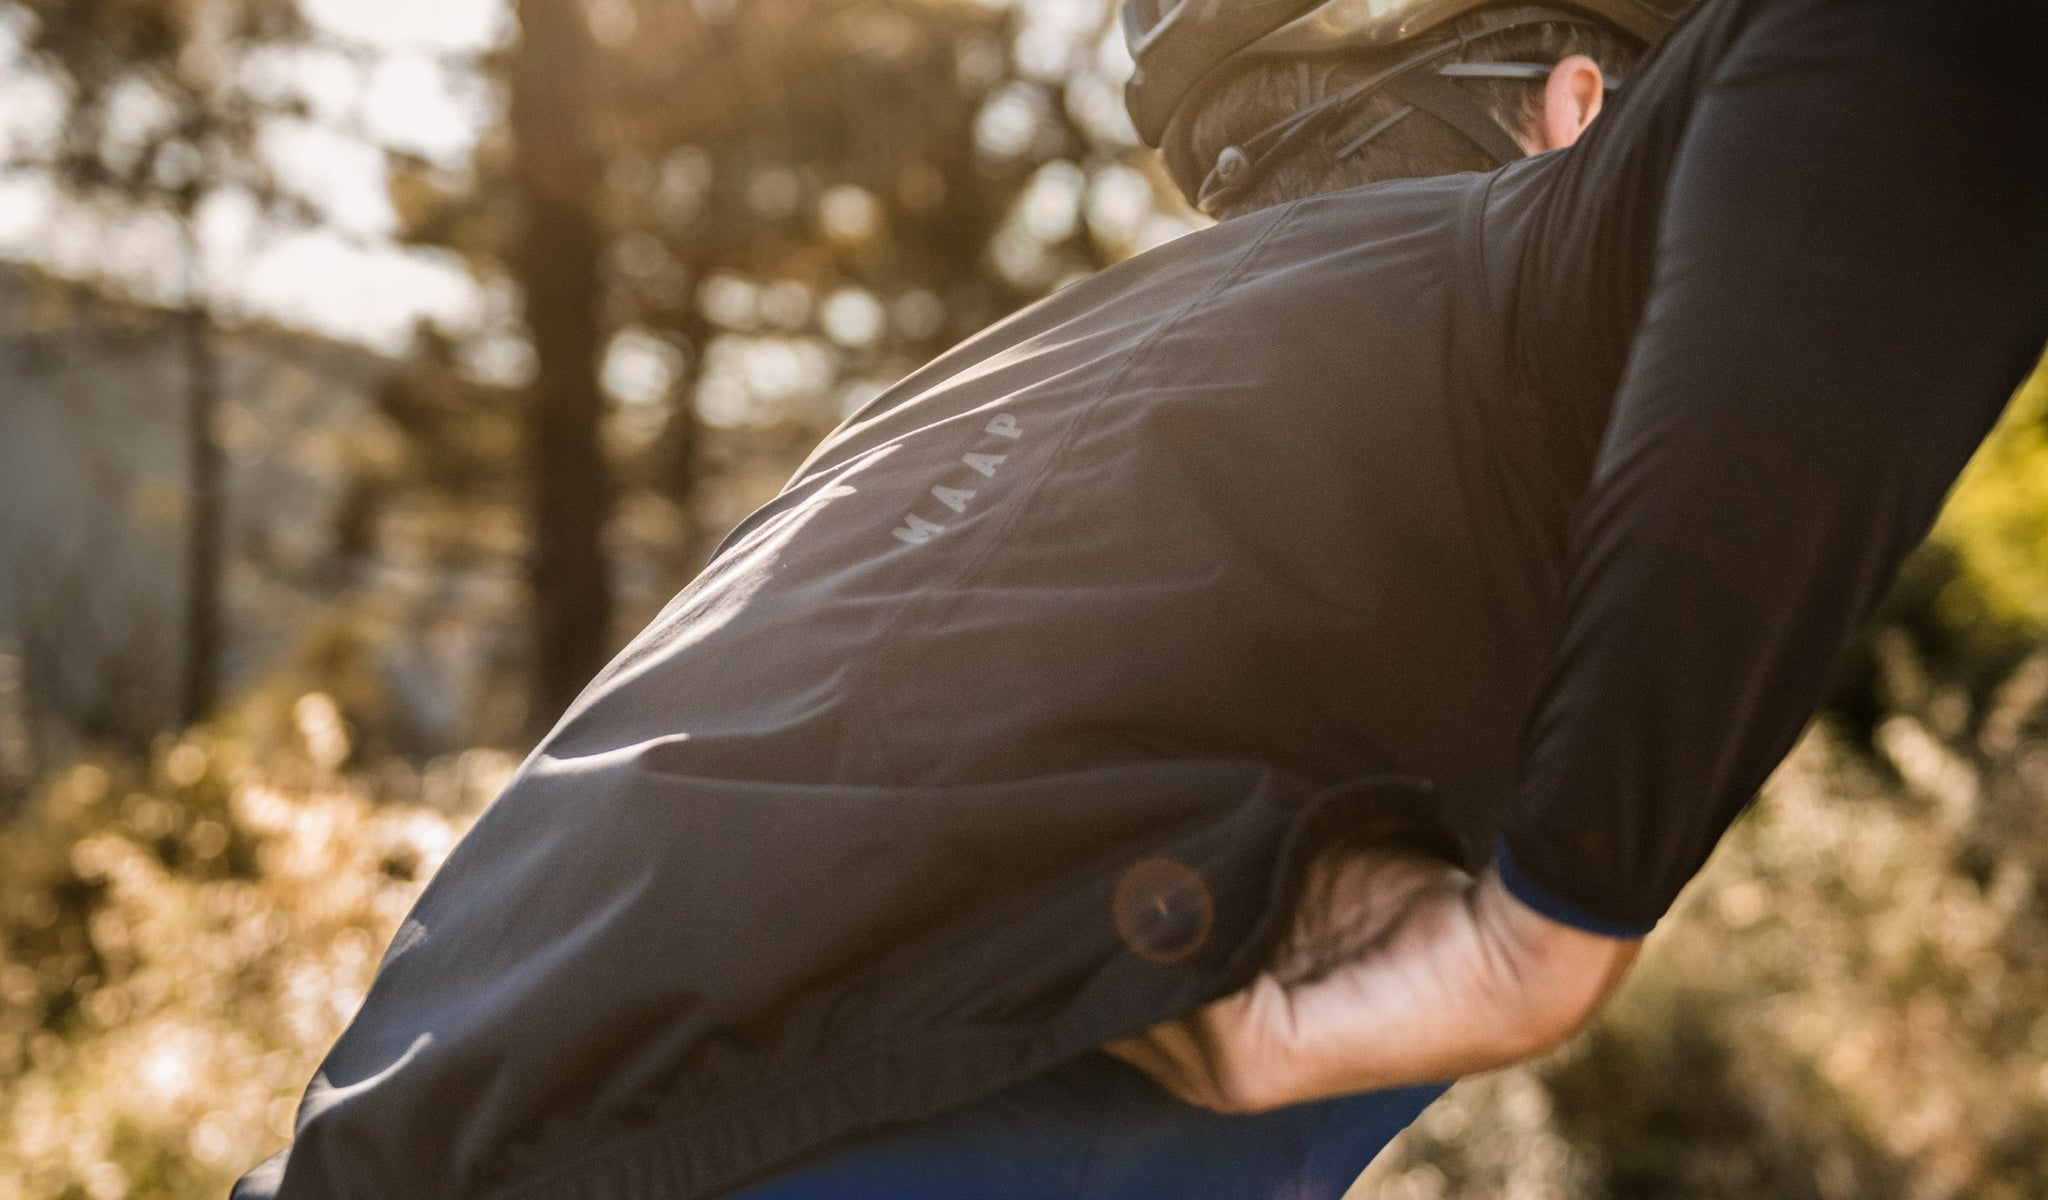 MAAP Unite Team Rain Cycling Jacket in Black for riding in wet weather conditions.